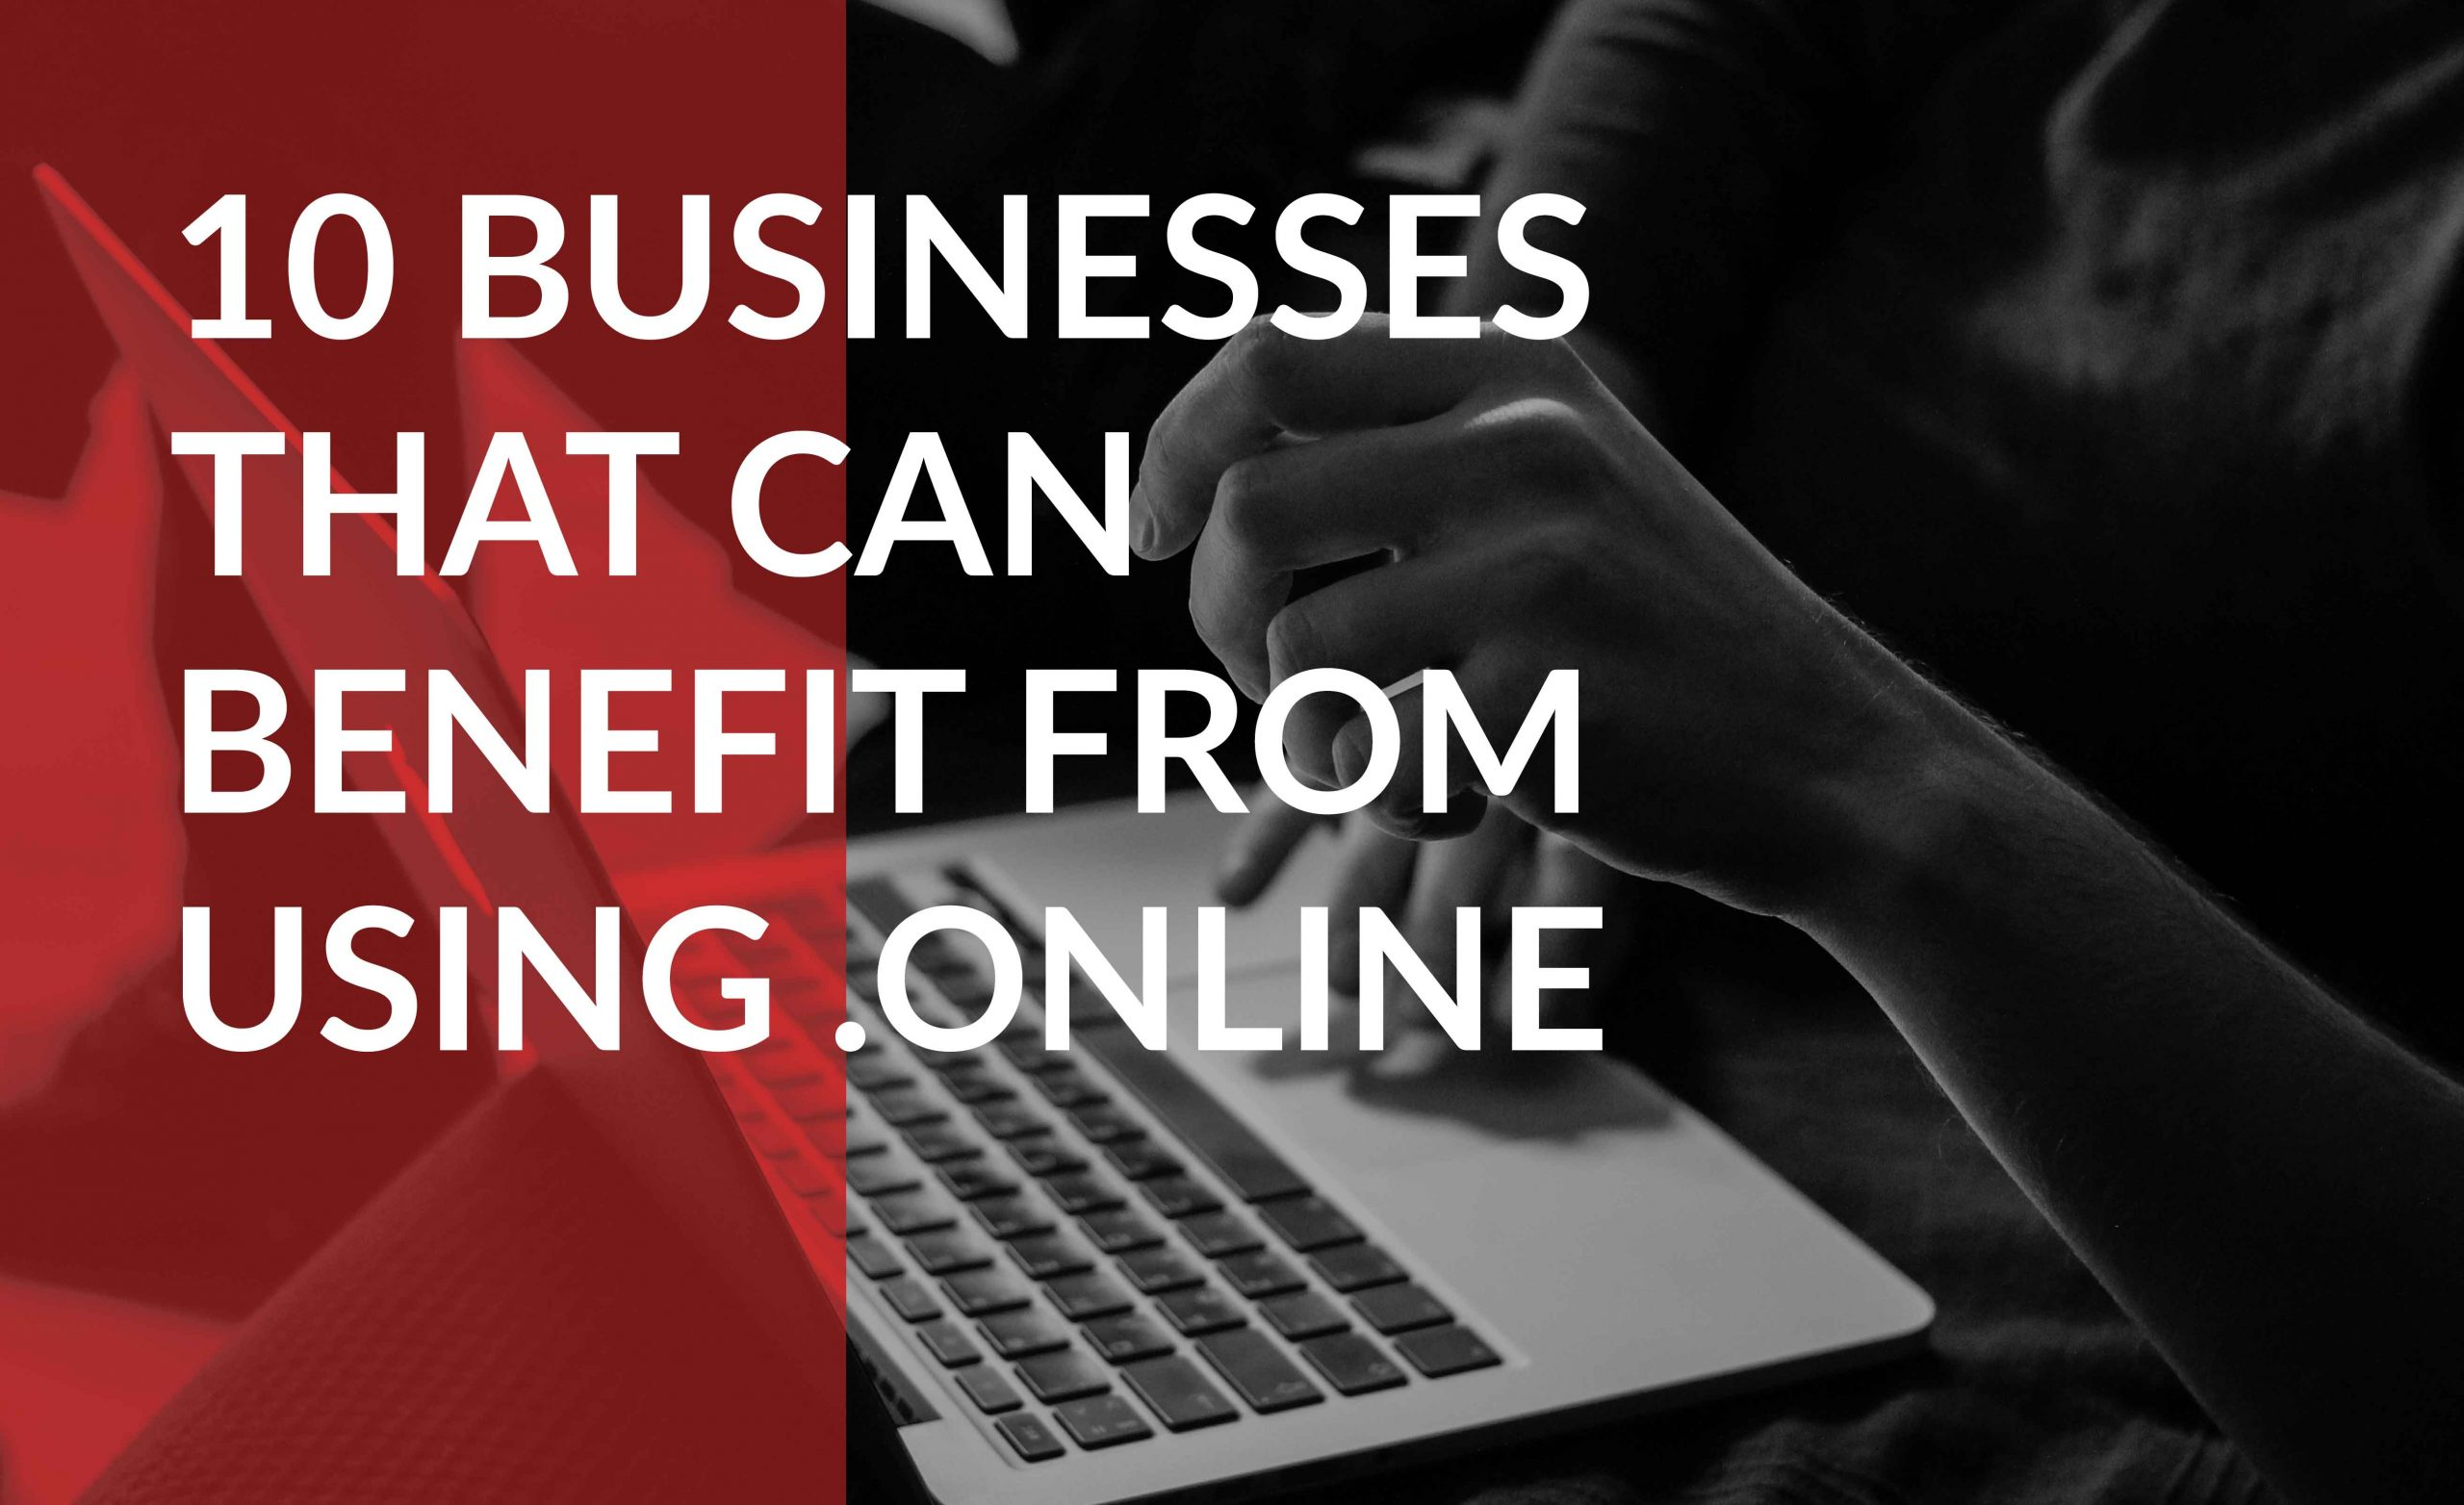 10 businesses that can benefit from a .online domain name